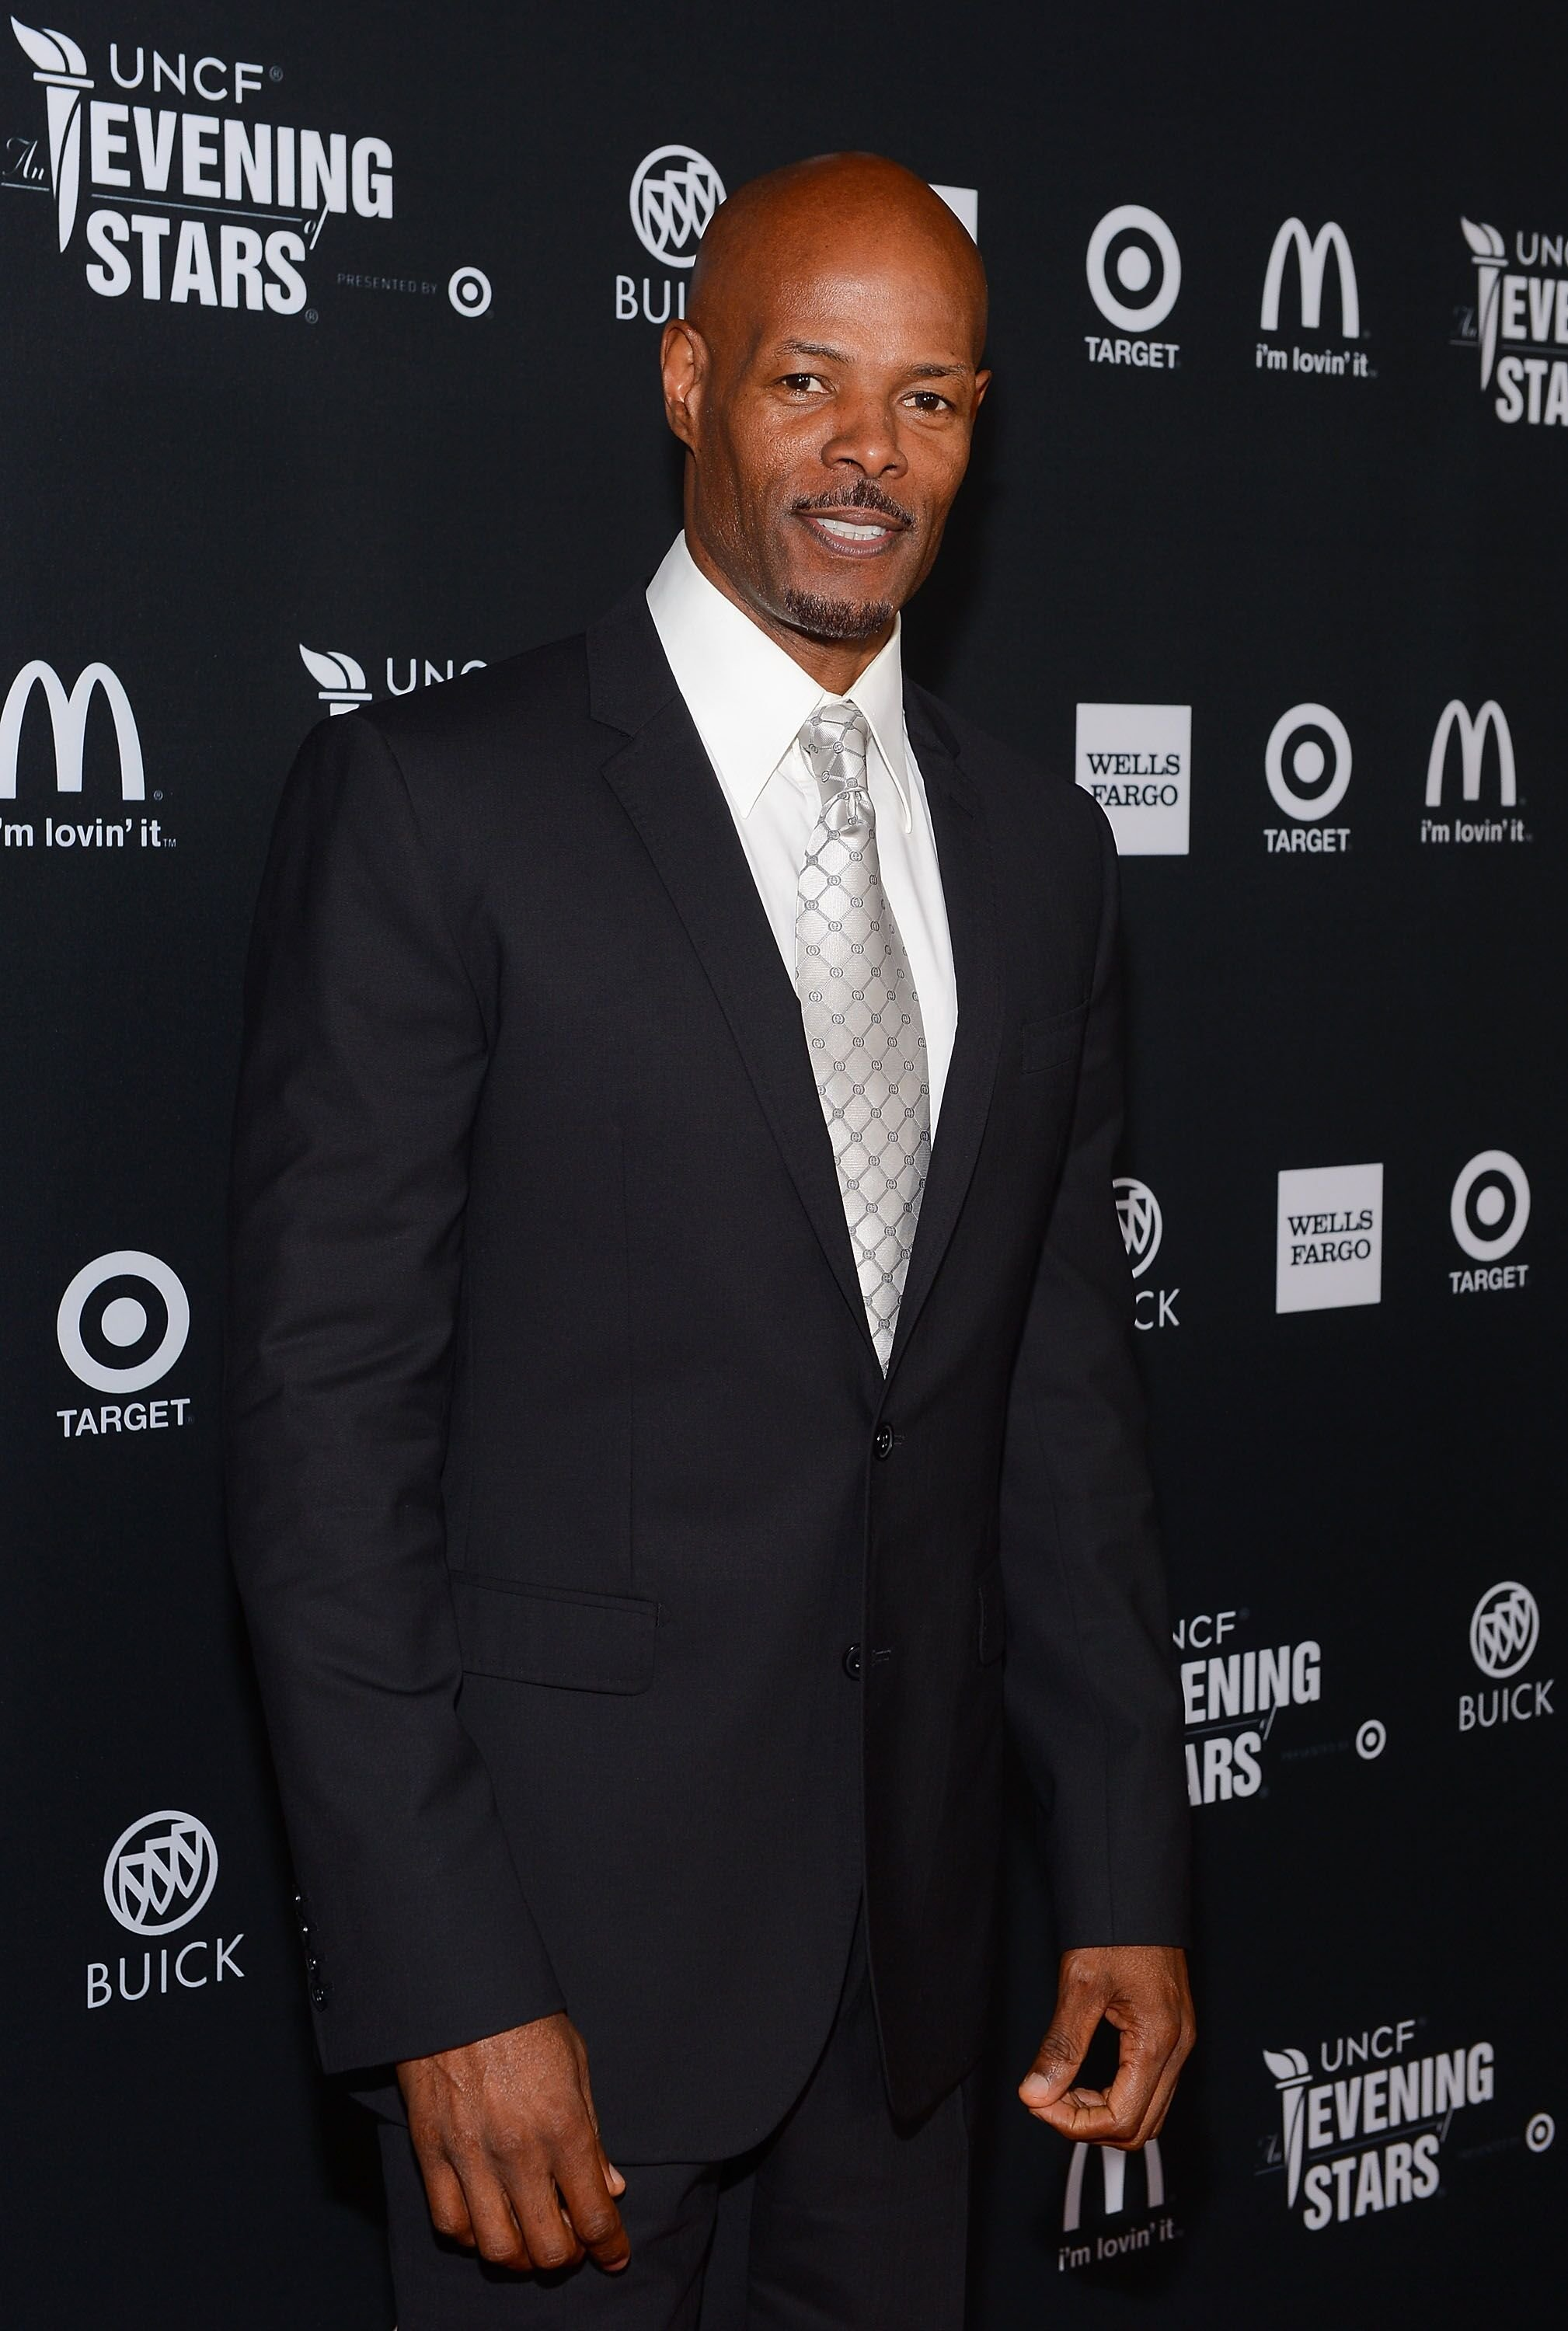 Keenen Ivory Wayans arrives at UNCF's 34th Annual An Evening Of Stars held at Pasadena Civic Auditorium | Getty Images